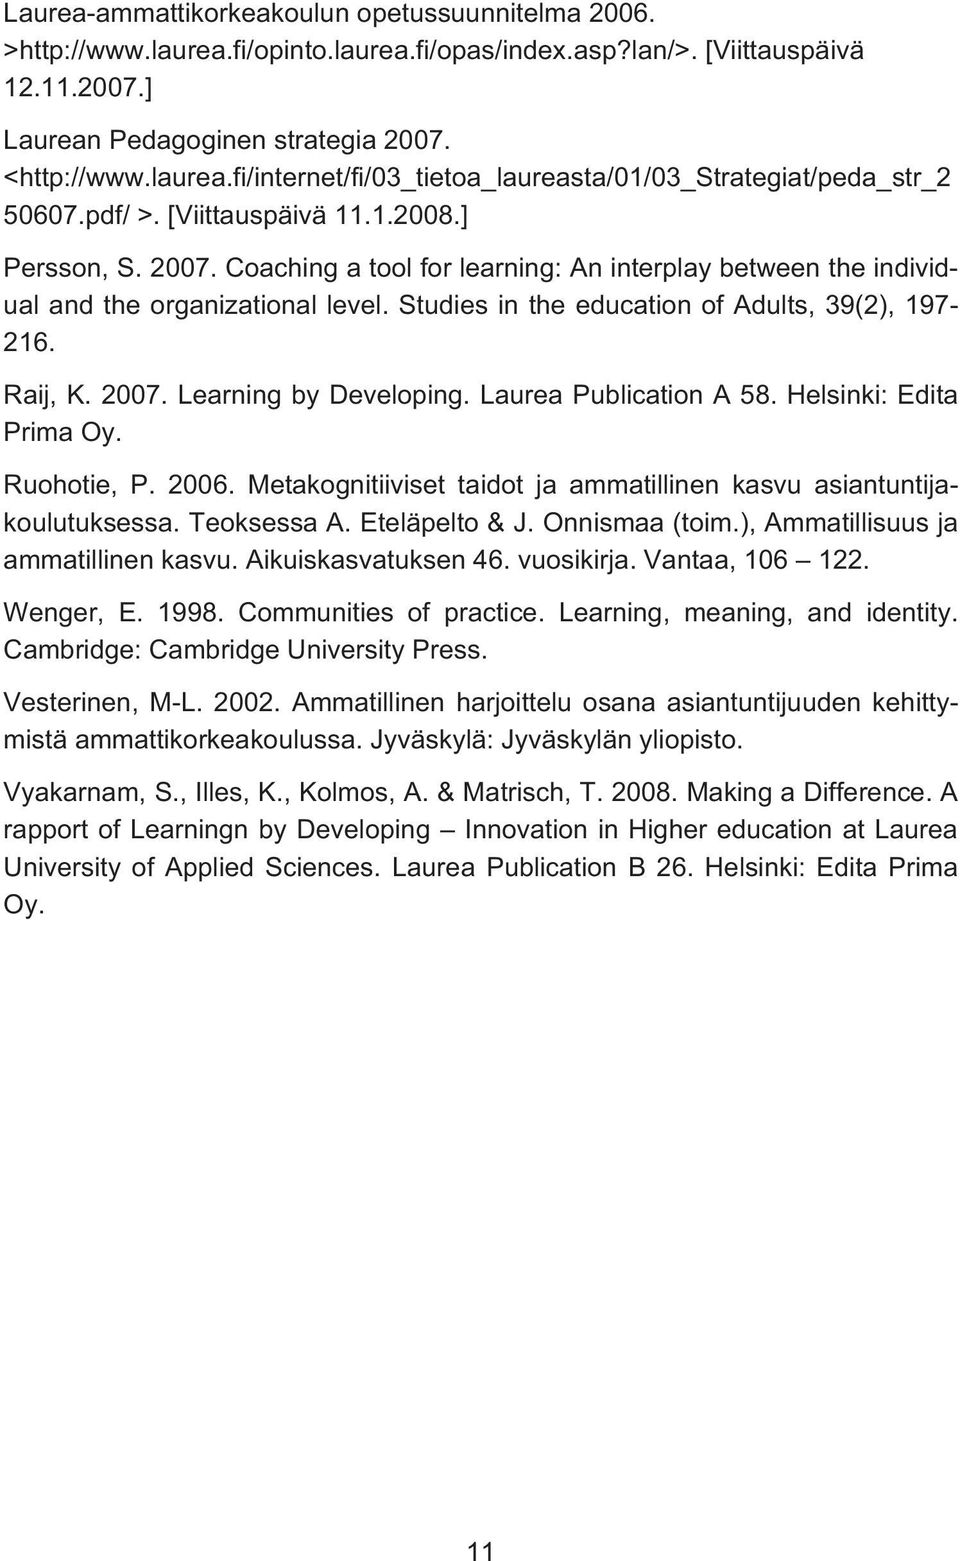 Raij, K. 2007. Learning by Developing. Laurea Publication A 58. Helsinki: Edita Prima Oy. Ruohotie, P. 2006. Metakognitiiviset taidot ja ammatillinen kasvu asiantuntijakoulutuksessa. Teoksessa A.